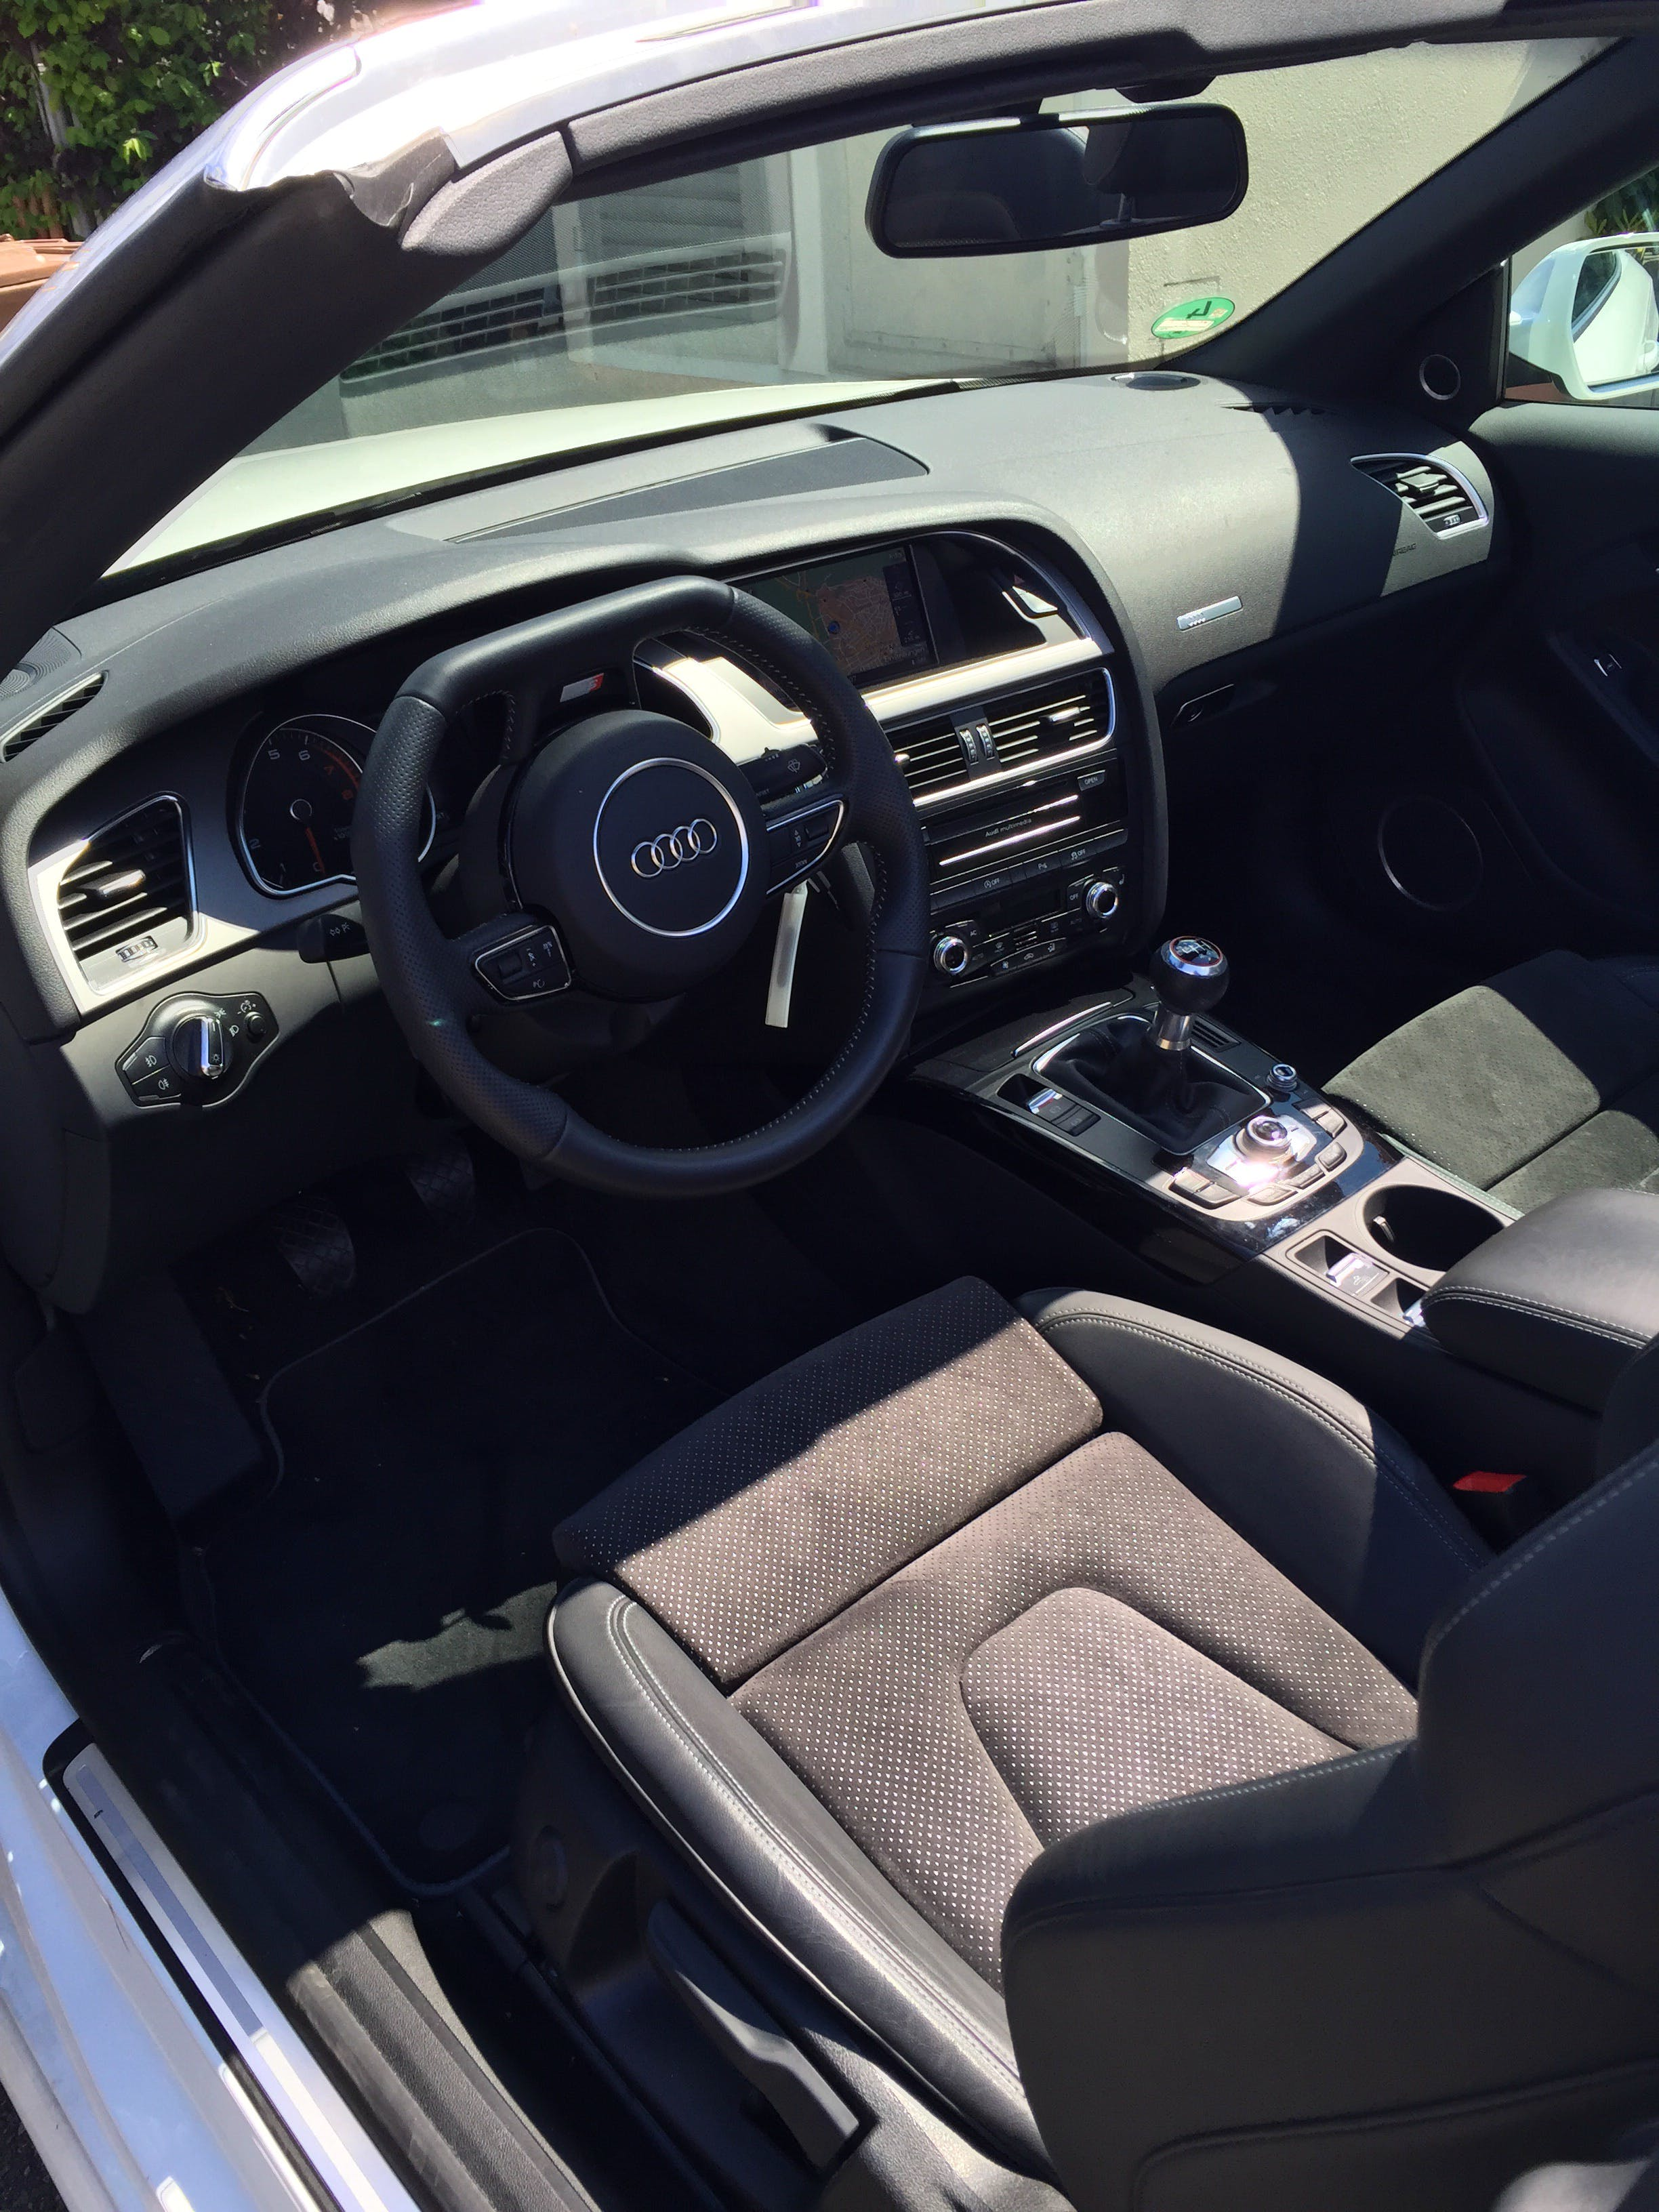 Audi A5 Cabriolet 2.0 TFSI 155 KW ( 211 ) 6-Gang mit Tempomat